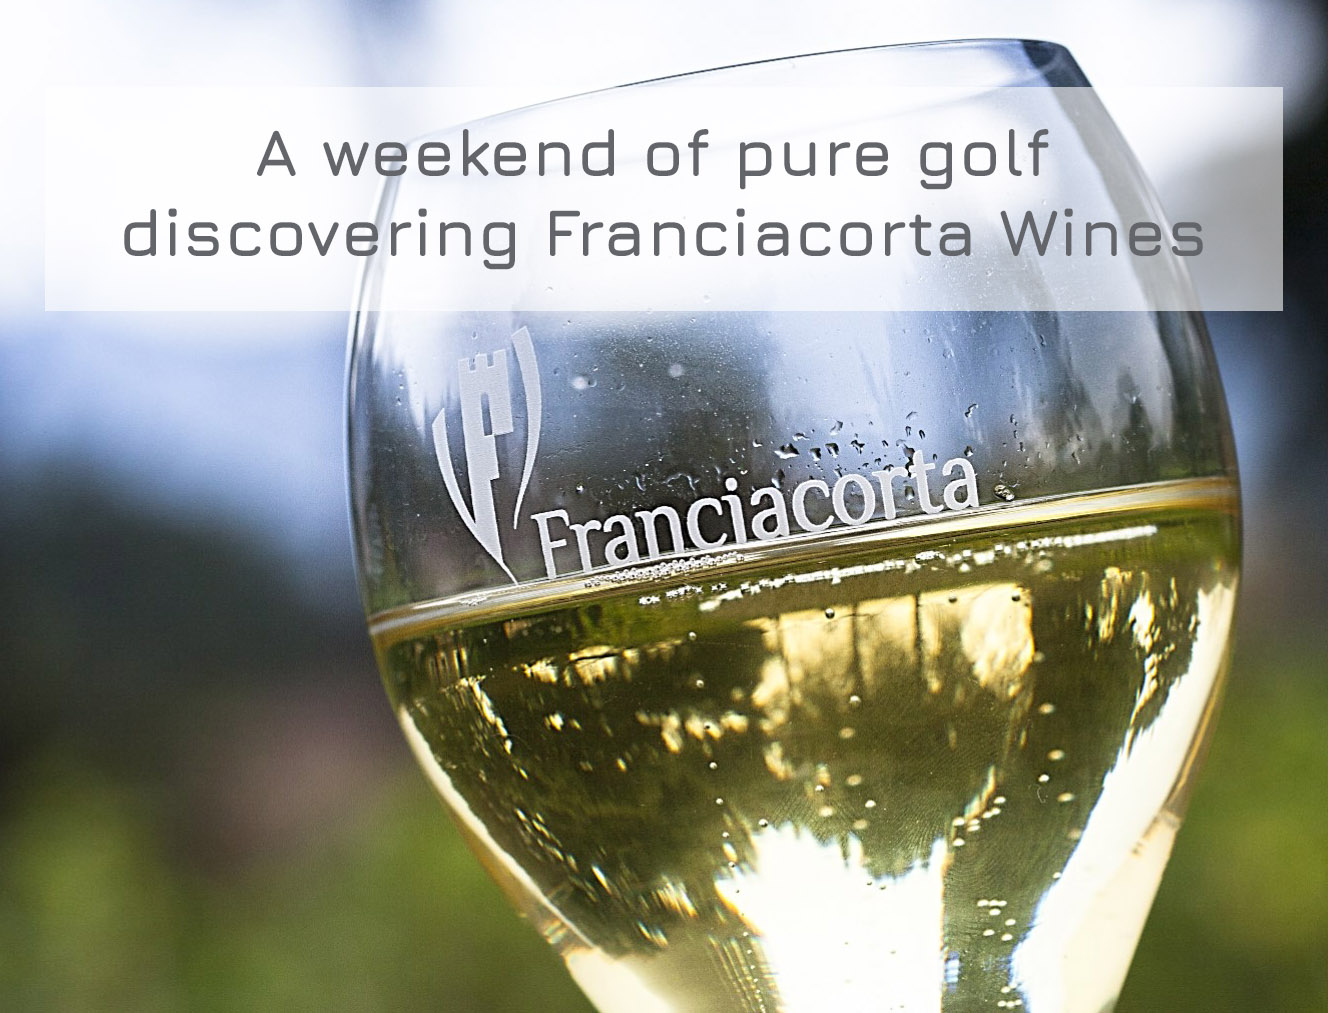 A weekend of pure golf discovering Franciacorta Wines